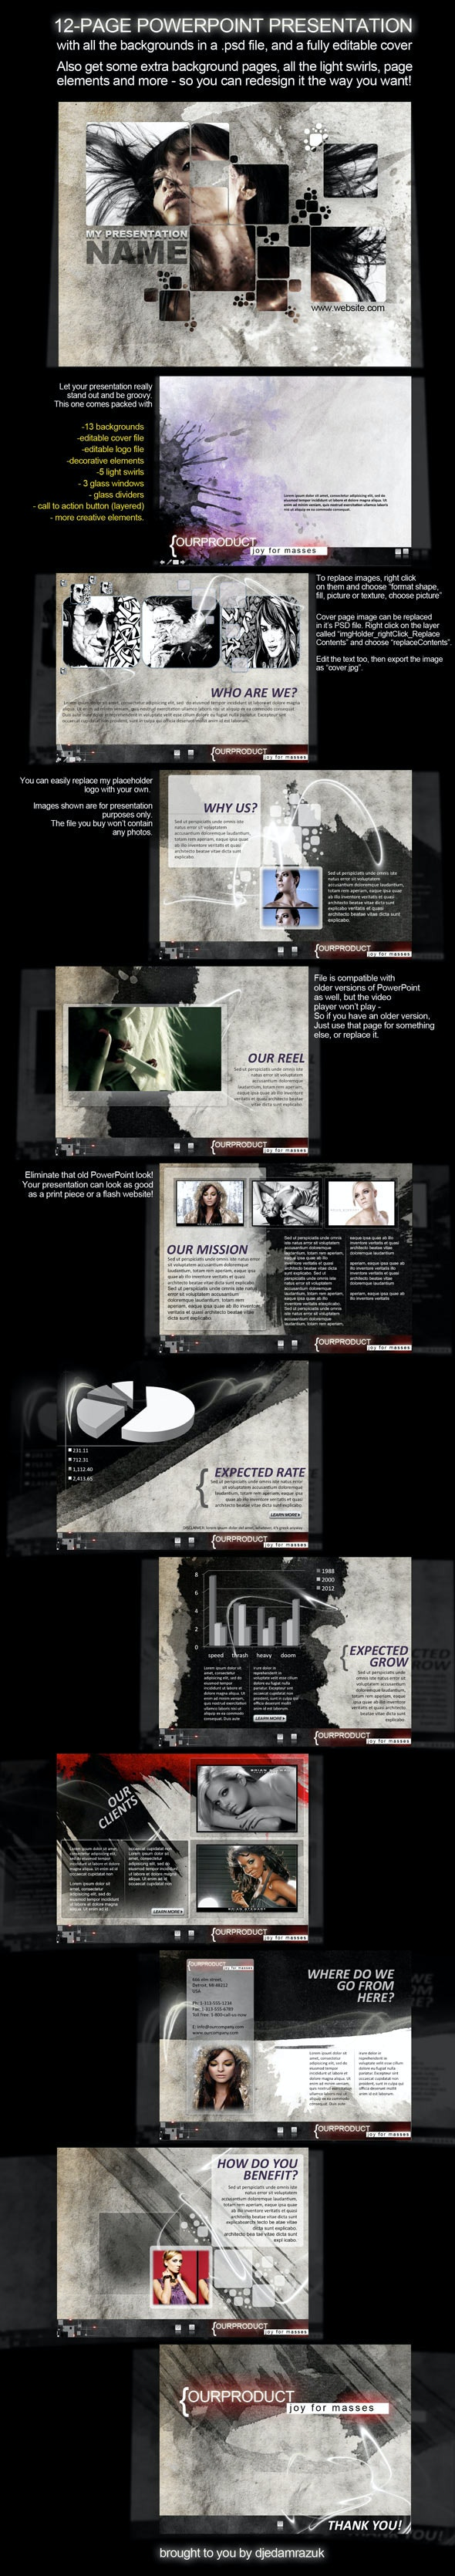 12-Page PowerPoint Presentation - Splash - Creative PowerPoint Templates